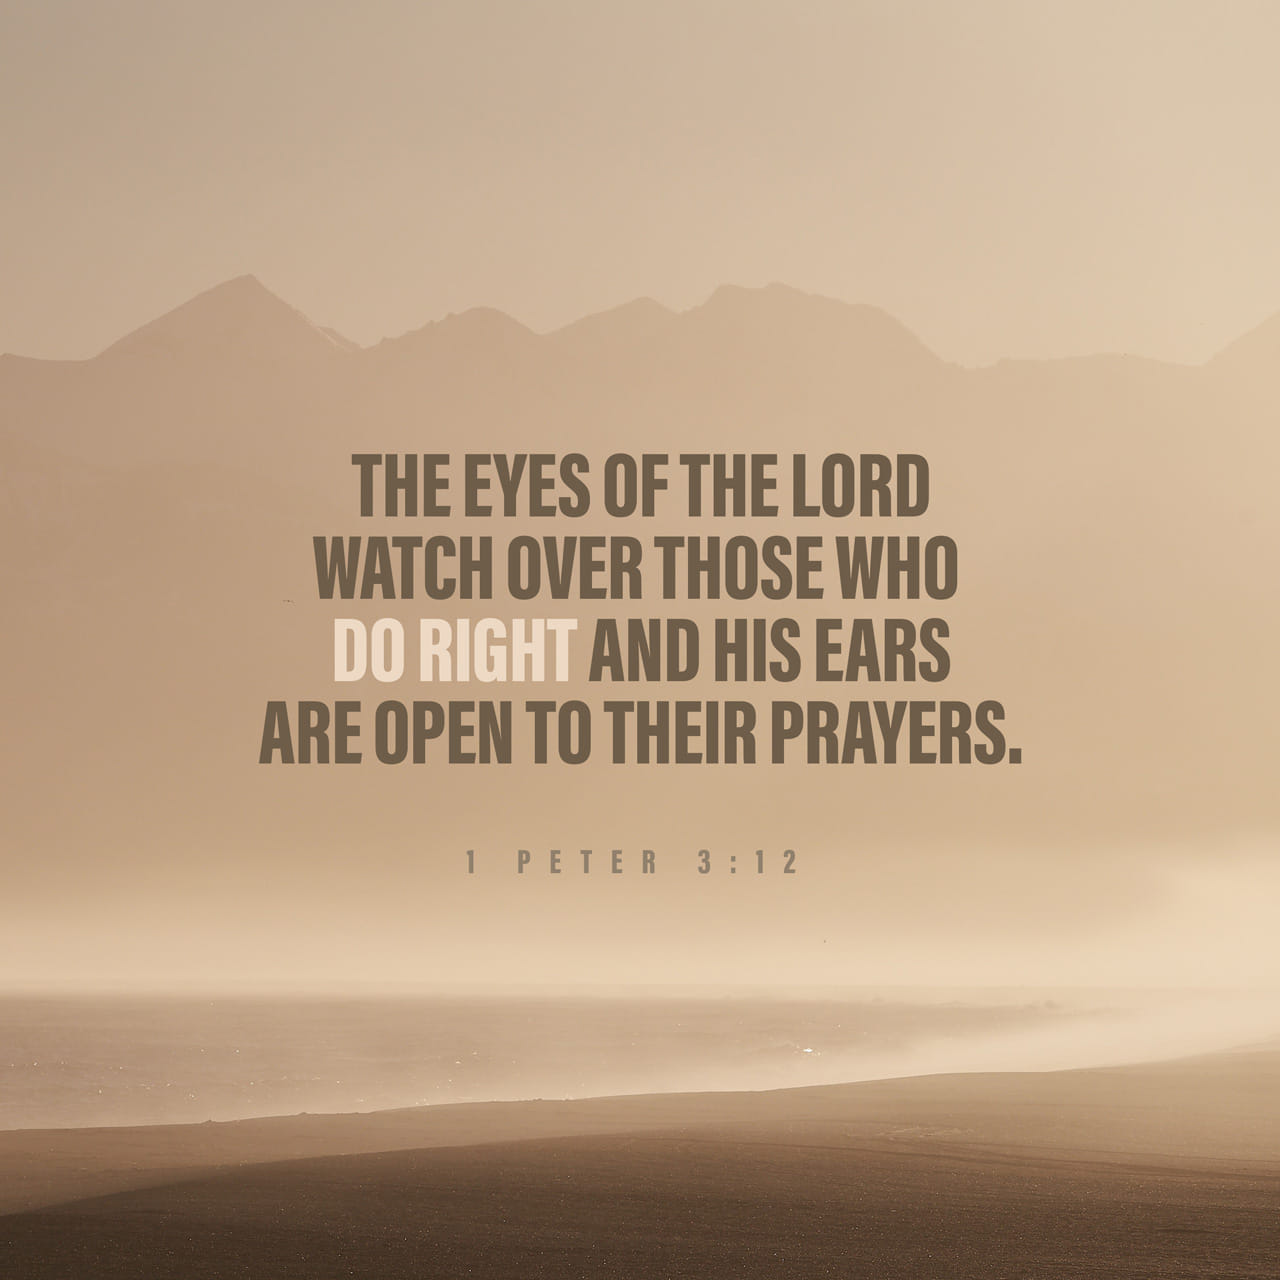 1 Peter 3:12-13 For the eyes of the Lord are over the righteous, and his ears are open unto their prayers: but the face of the Lord is against them that do evil. And who is he that will harm you, if ye be followers o | King James Version (KJV)